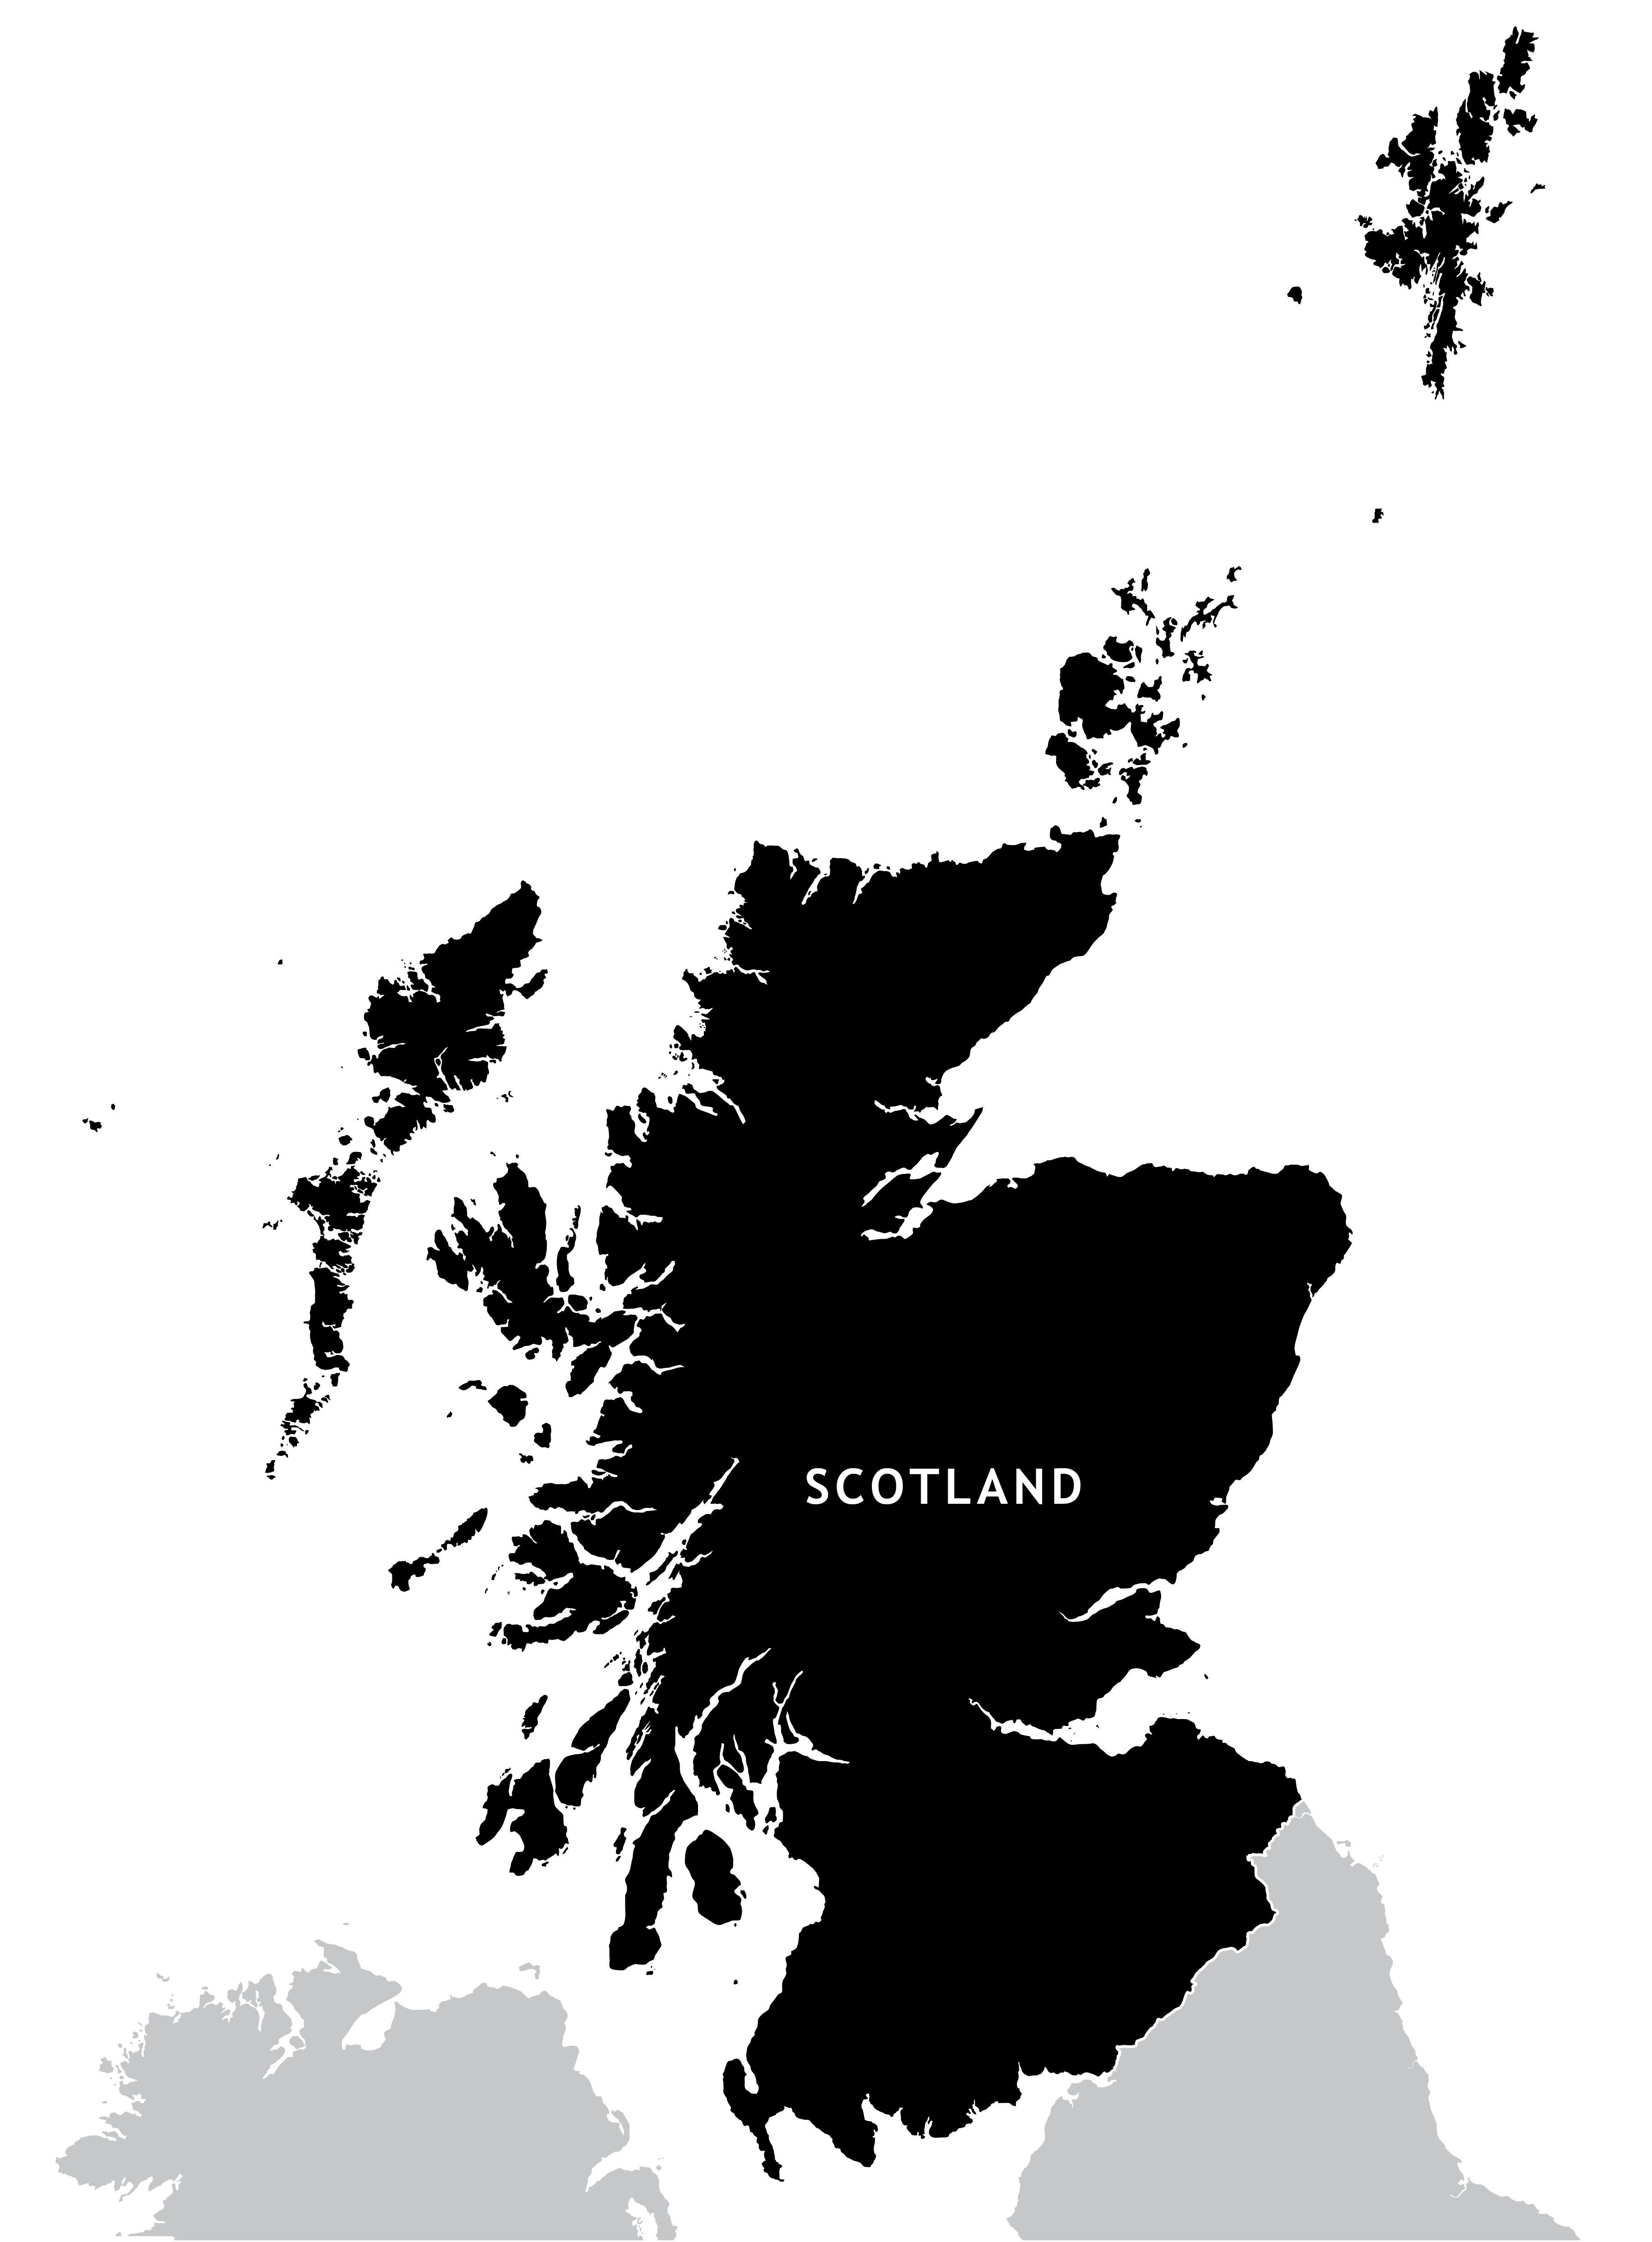 Scotland outline map   royalty free editable vector map   Maproom Scotland outline map preview Editable vector map of Scotland preview preview